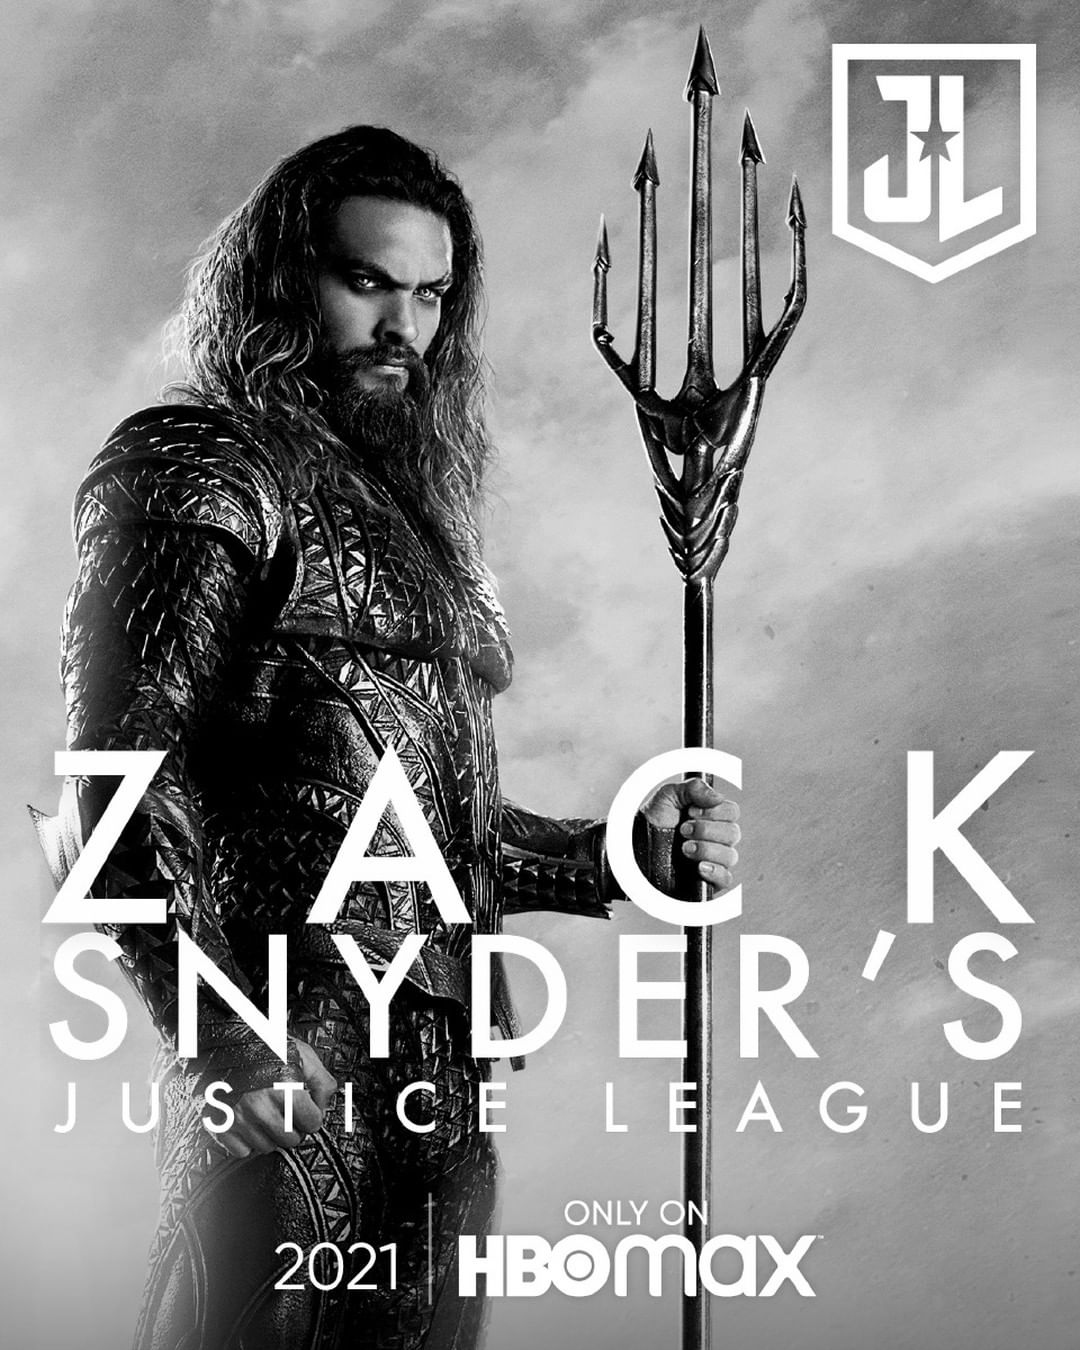 Zack Snyder's Justice League Poster - Jason Momoa as Aquaman